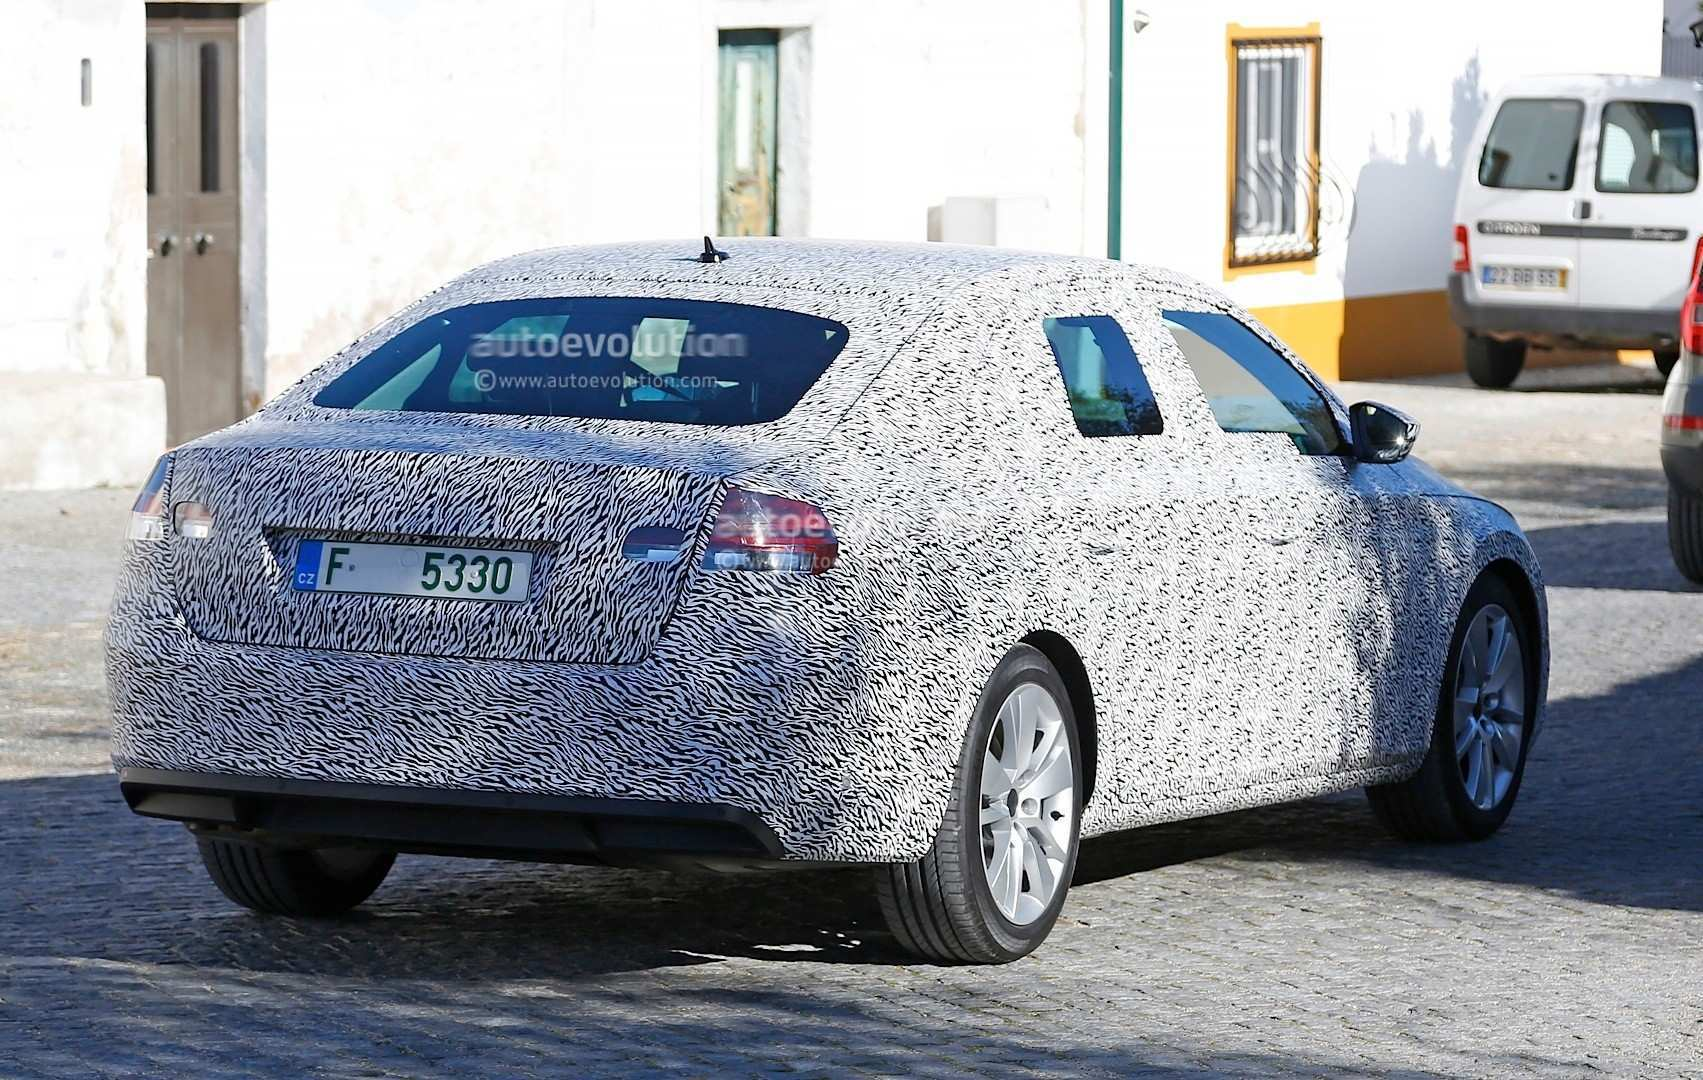 33 The Spy Shots Skoda Superb Exterior